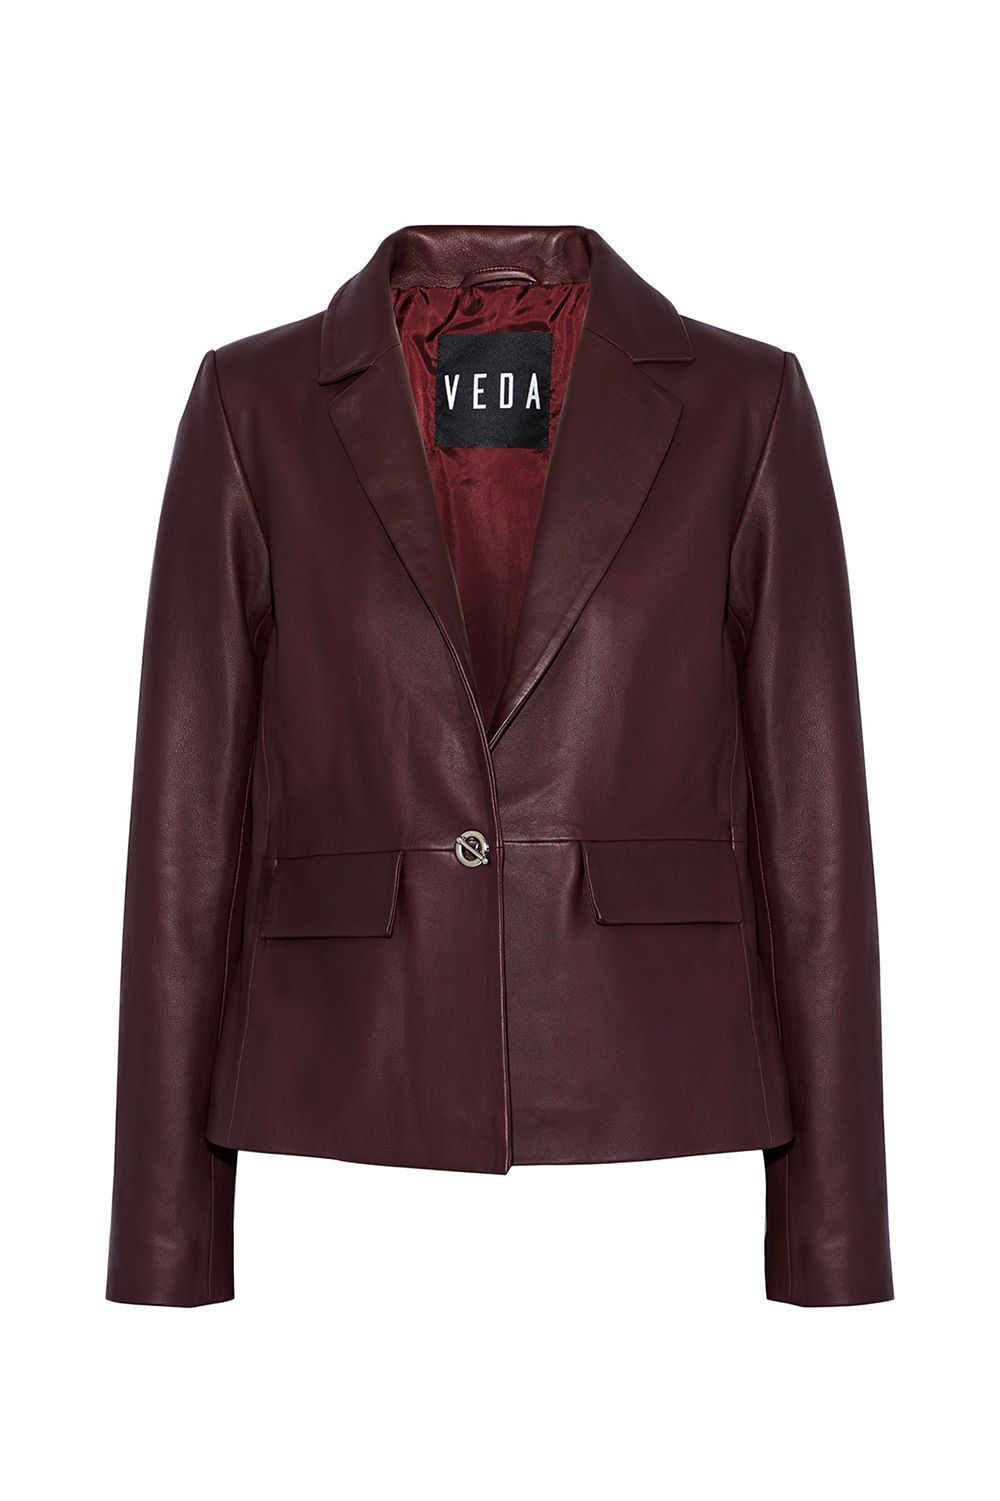 3cfc843b22f 18 Best Leather Jackets for Women 2018 - Affordable Leather Jackets That  Will Never Go Out of Style